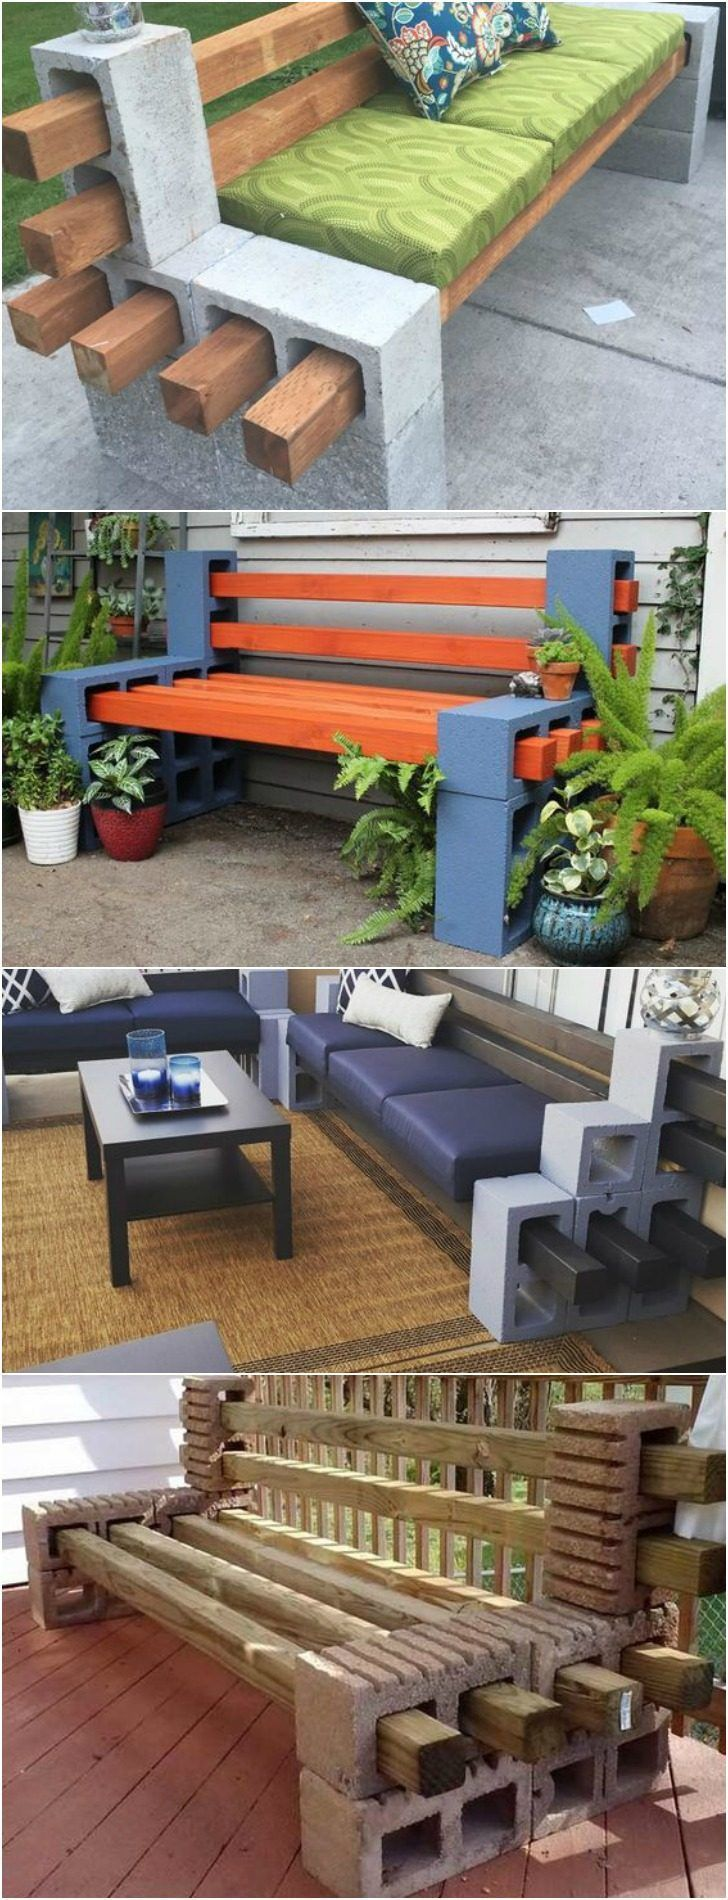 How To Make A Bench From Cinder Blocks Amazing Ideas Cinder - Awesome home projects created from concrete cinder blocks